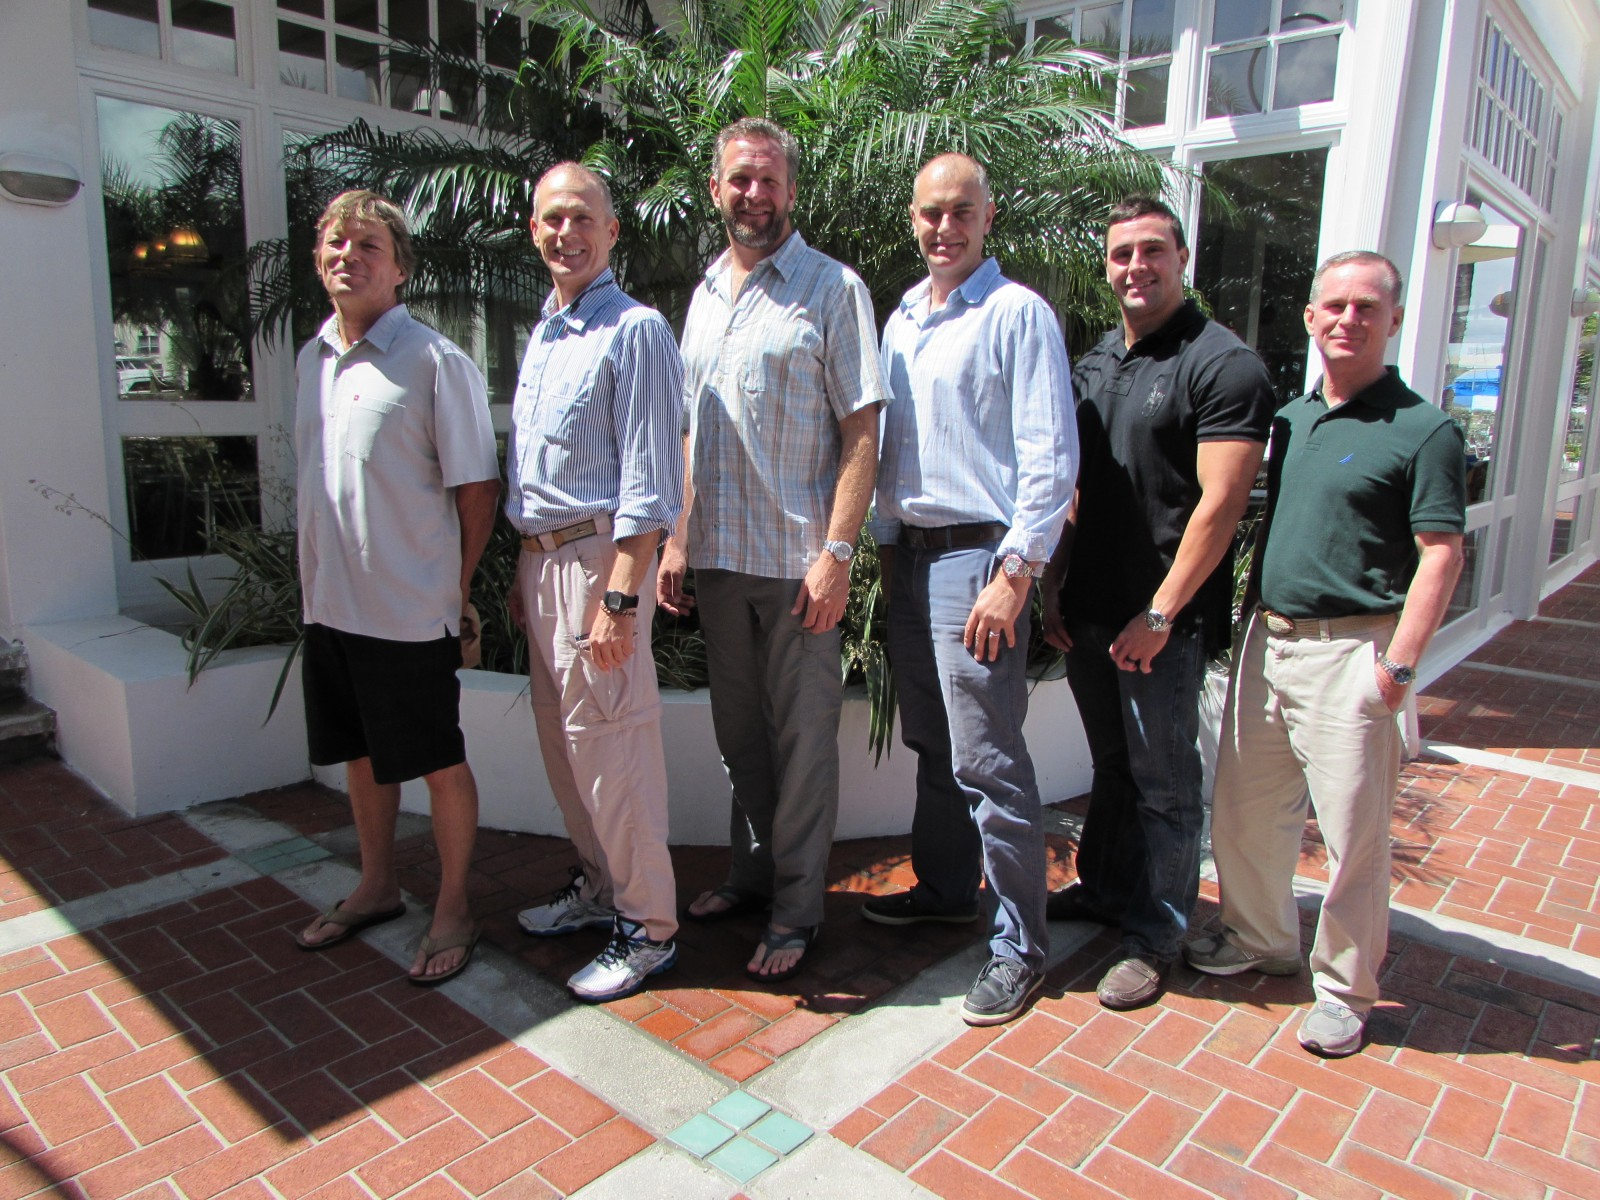 Attendees of The Triton's April Bridge luncheon were, from left, Adam Lambert of S/Y Mitseaah, Ned Stone (freelance), Steve Steinberg of M/Y Illiquid, David Cherington of M/Y Meamina, Daniel Weaver, and Stephen Pepe of M/Y Dreams. PHOTO/LUCY REED